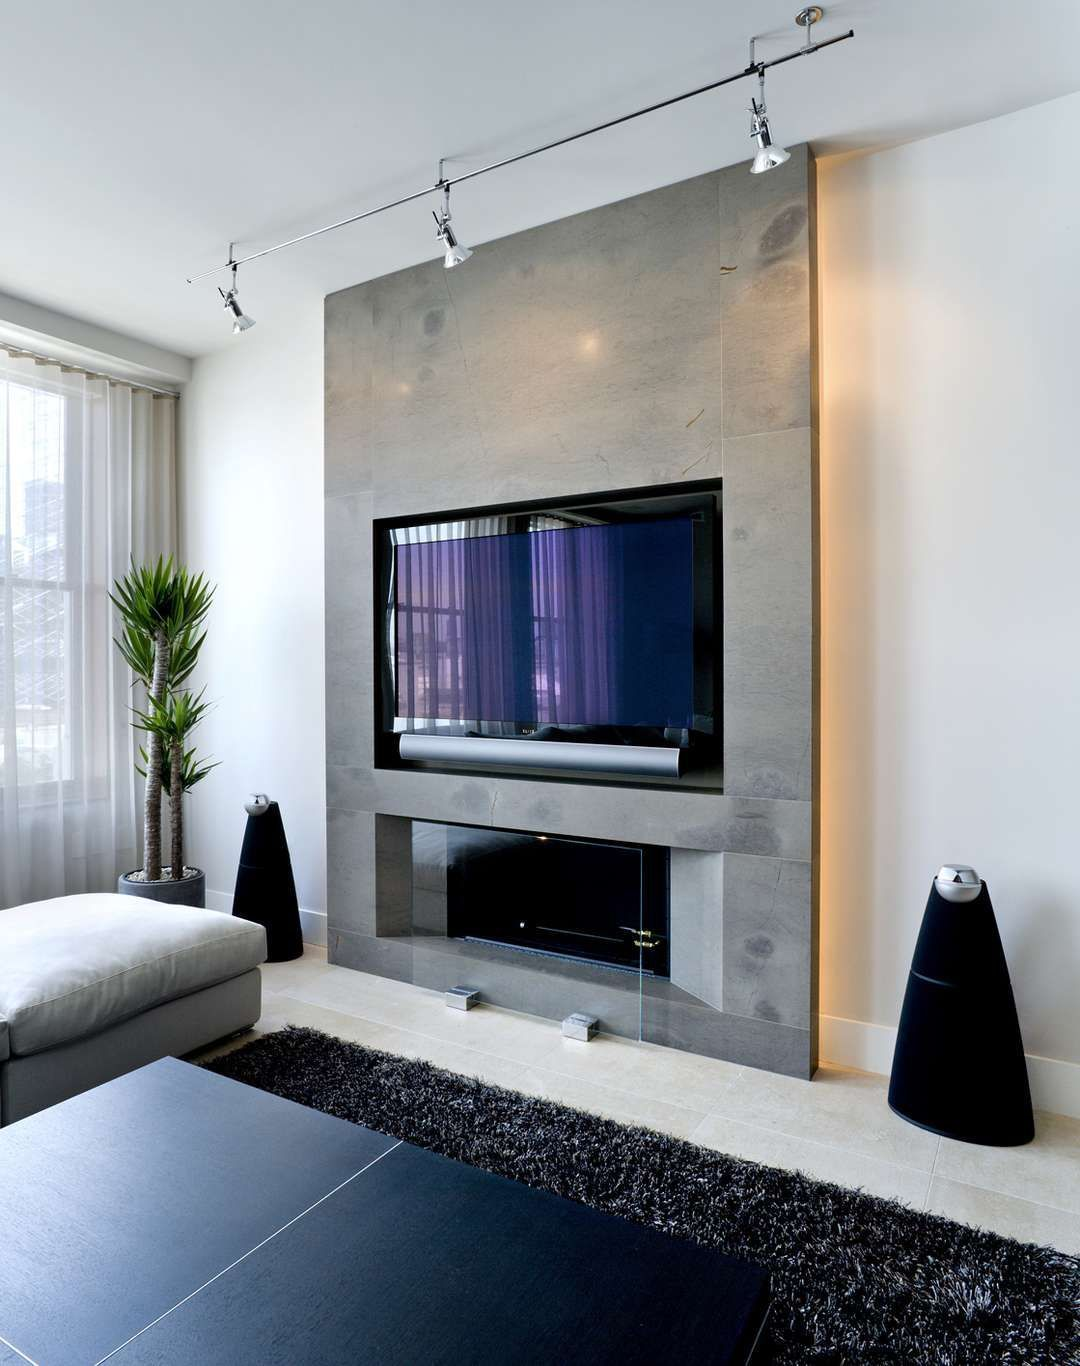 Living Room Feature Wall Decor: 58 Modern Fireplaces With TV Ideas That Will Make You